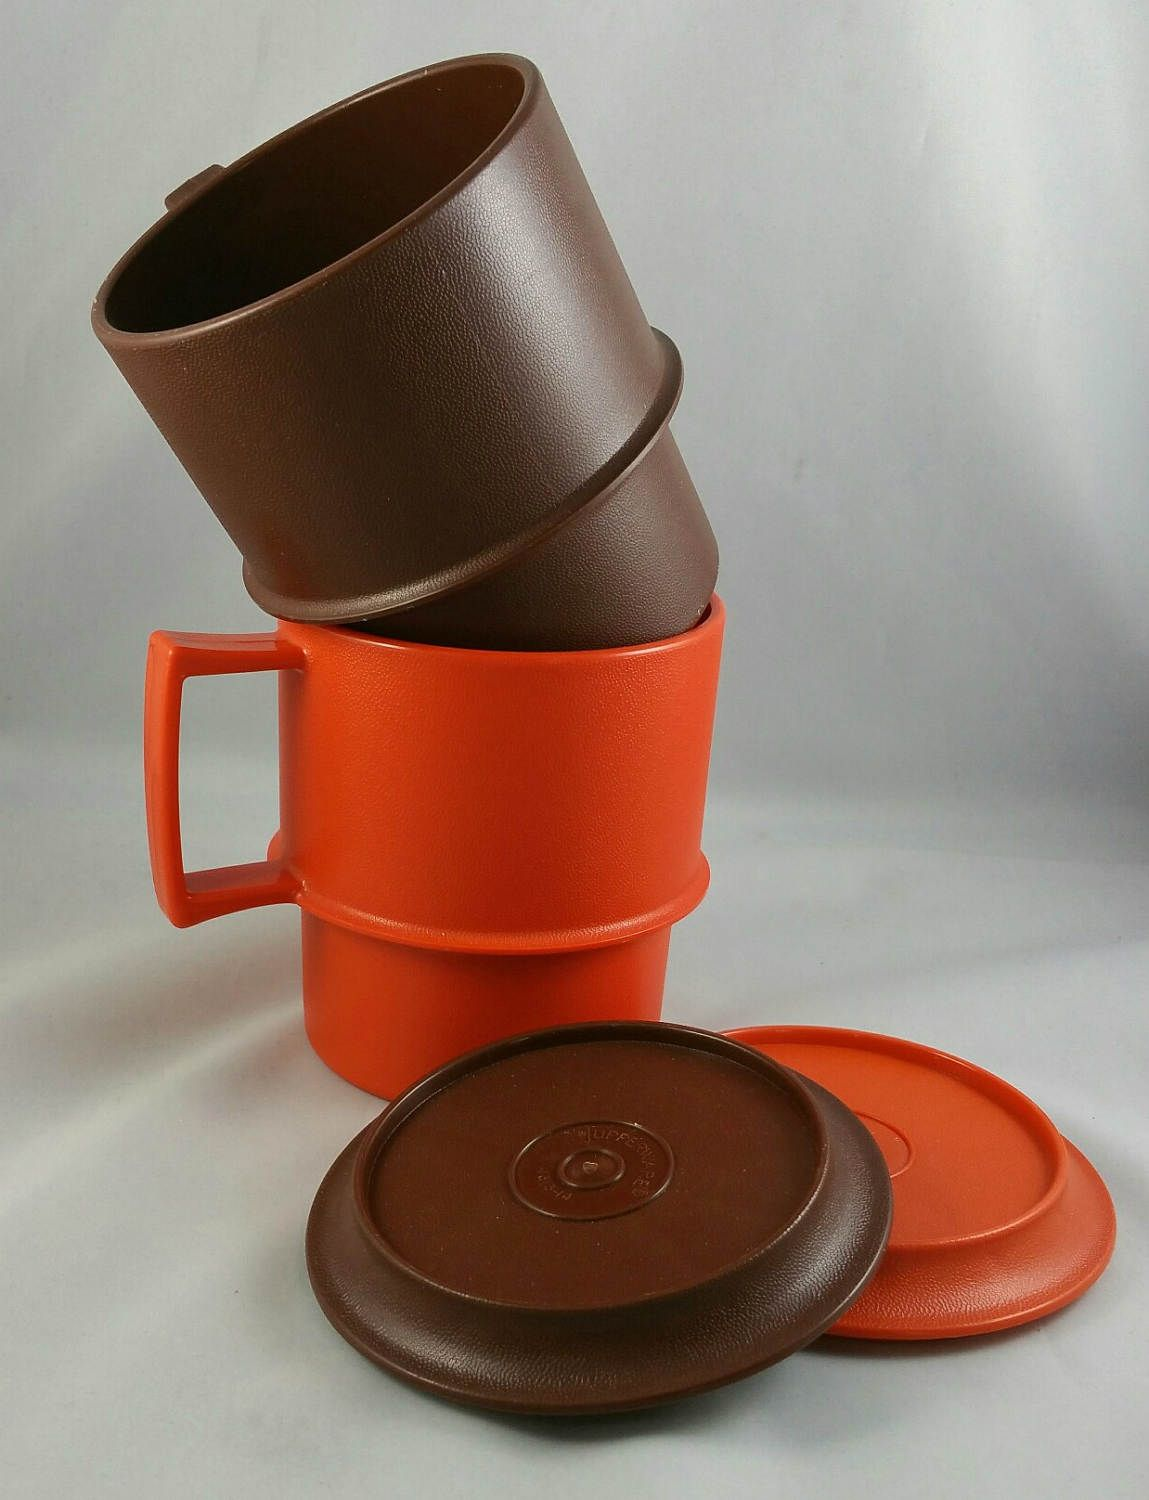 Vintage Tupperware Stacking Coffee Mugs With Coasters/Lids